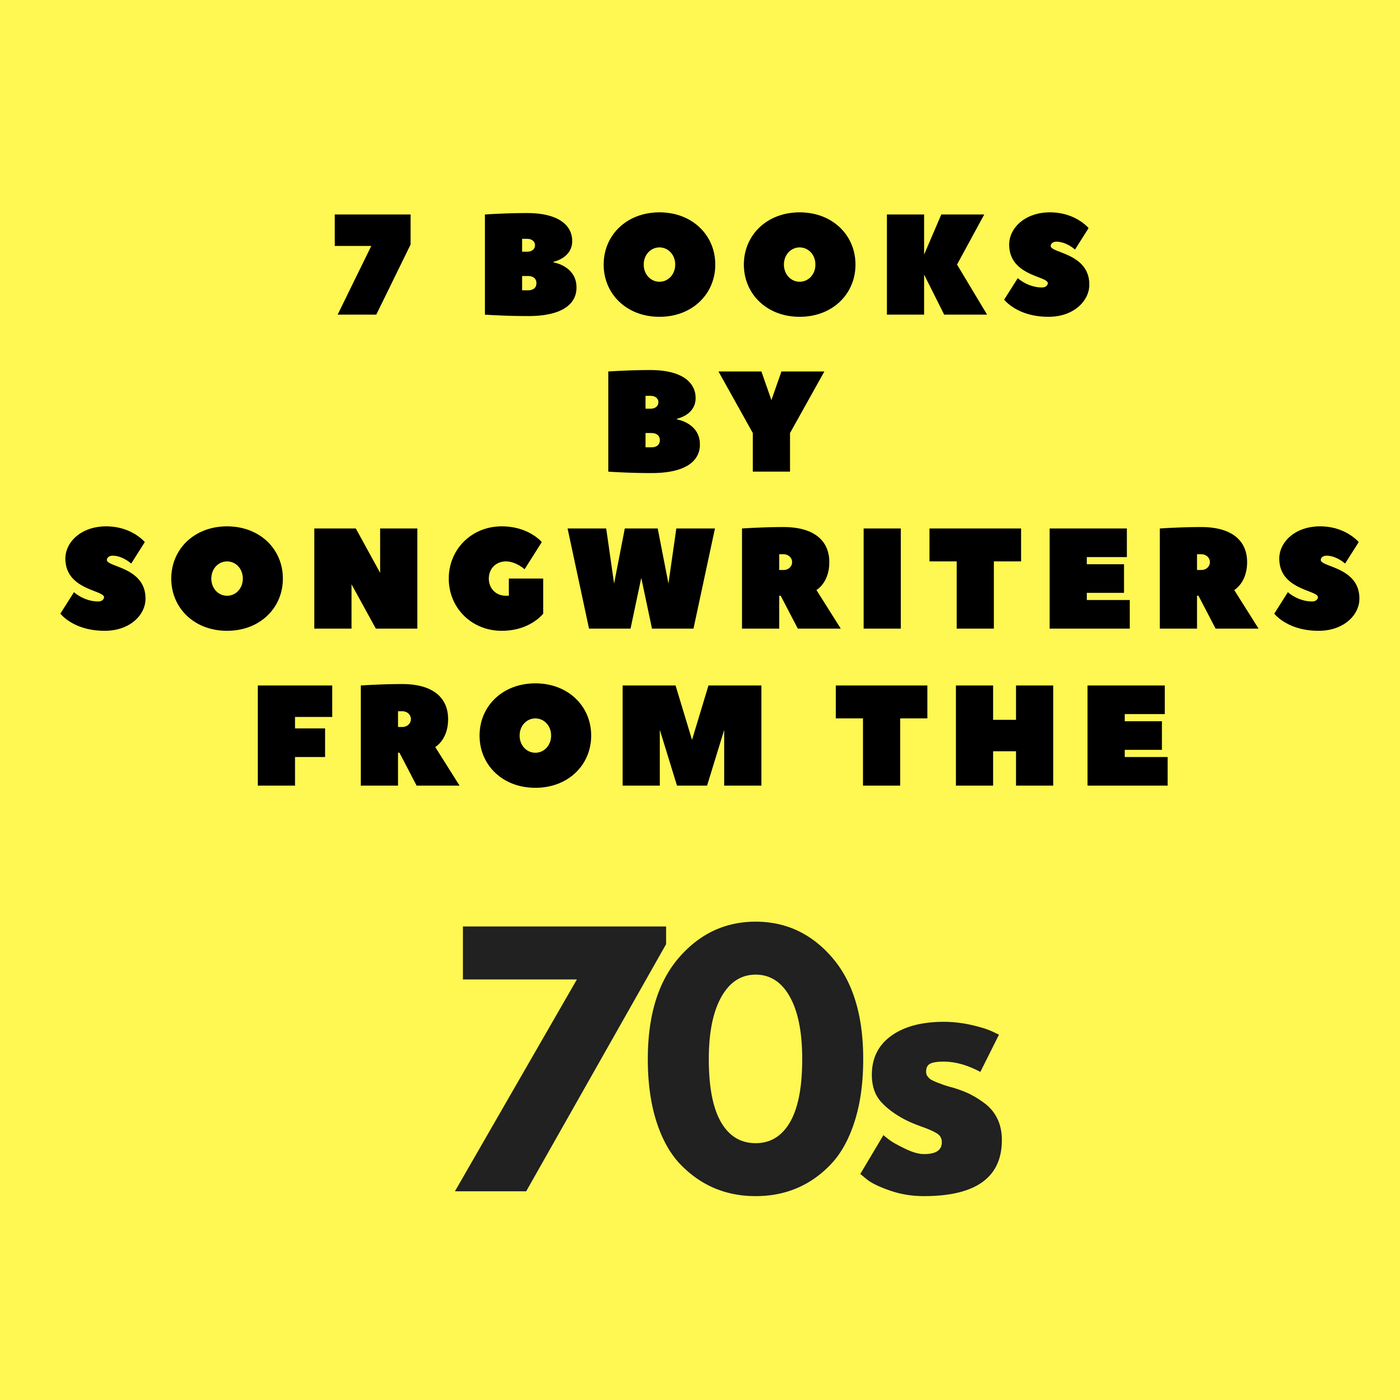 songwriterbooks70s.png